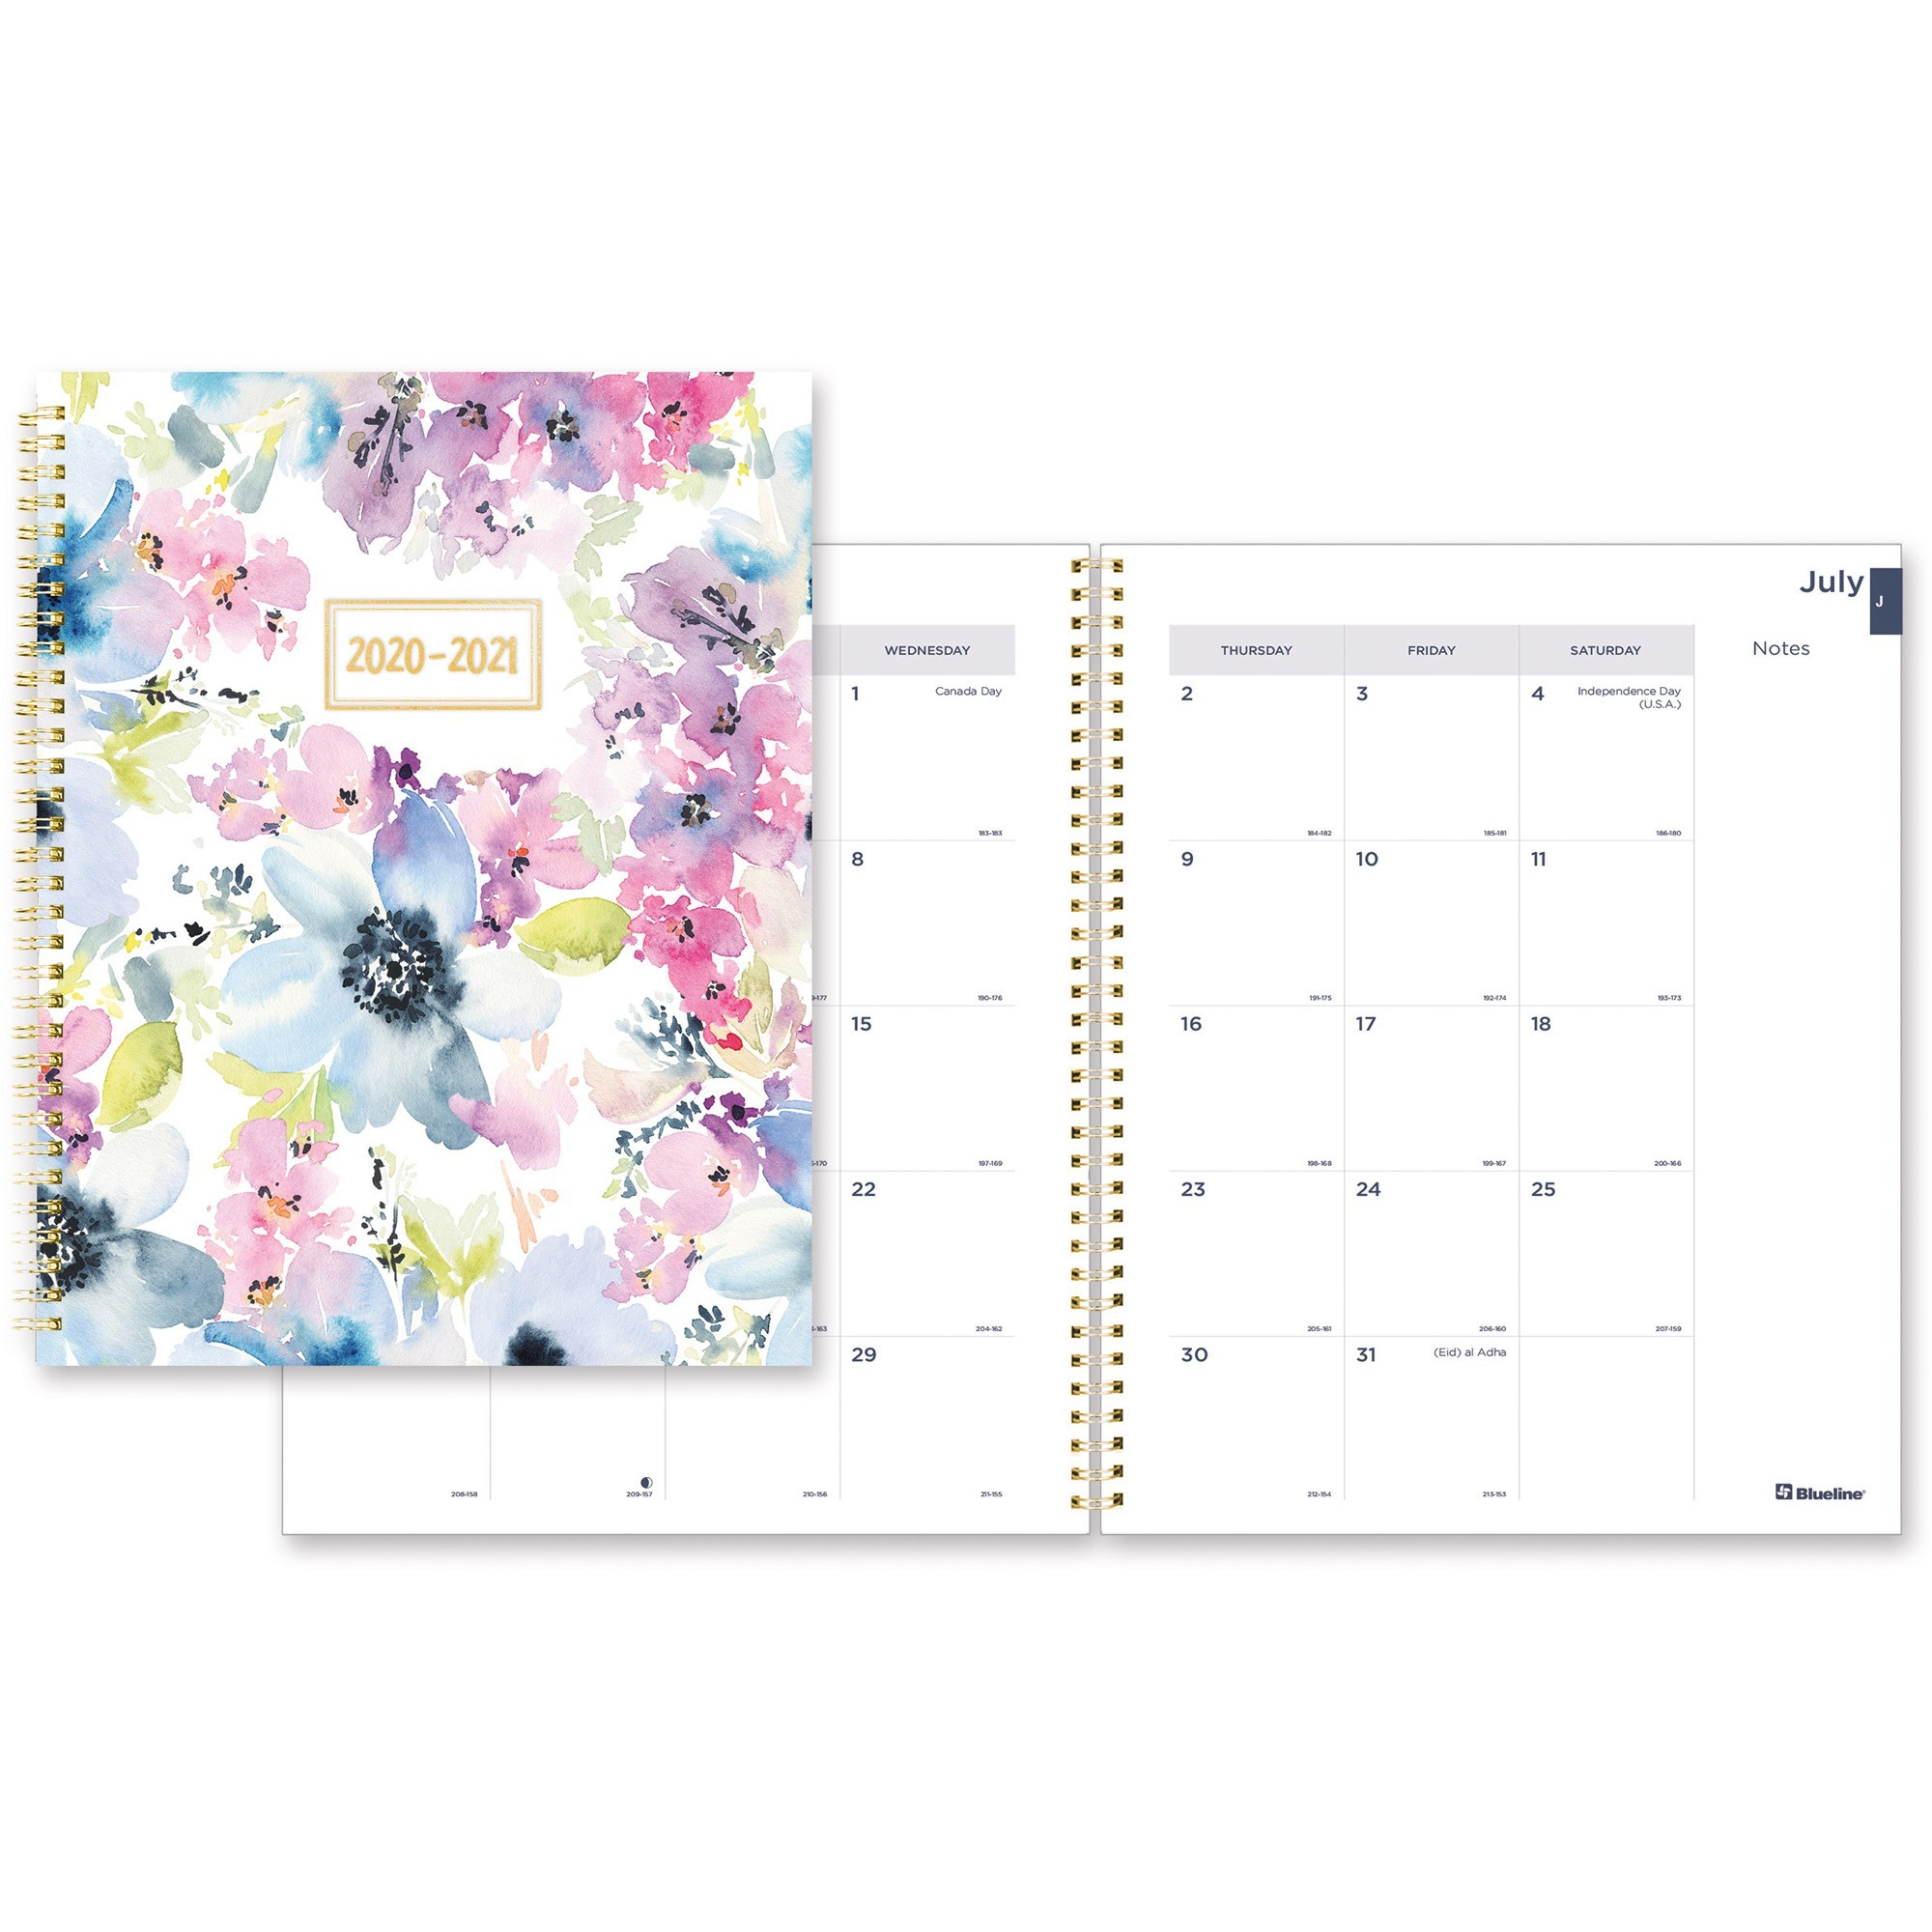 Blueline Floral Academic Monthly Planner - Academic - Monthly - 1.2 Year -  July 2020 Till August 2021 - 1 Month Double Page Layout - Twin Wire - Desk intended for Academic Diary August 2021 To August